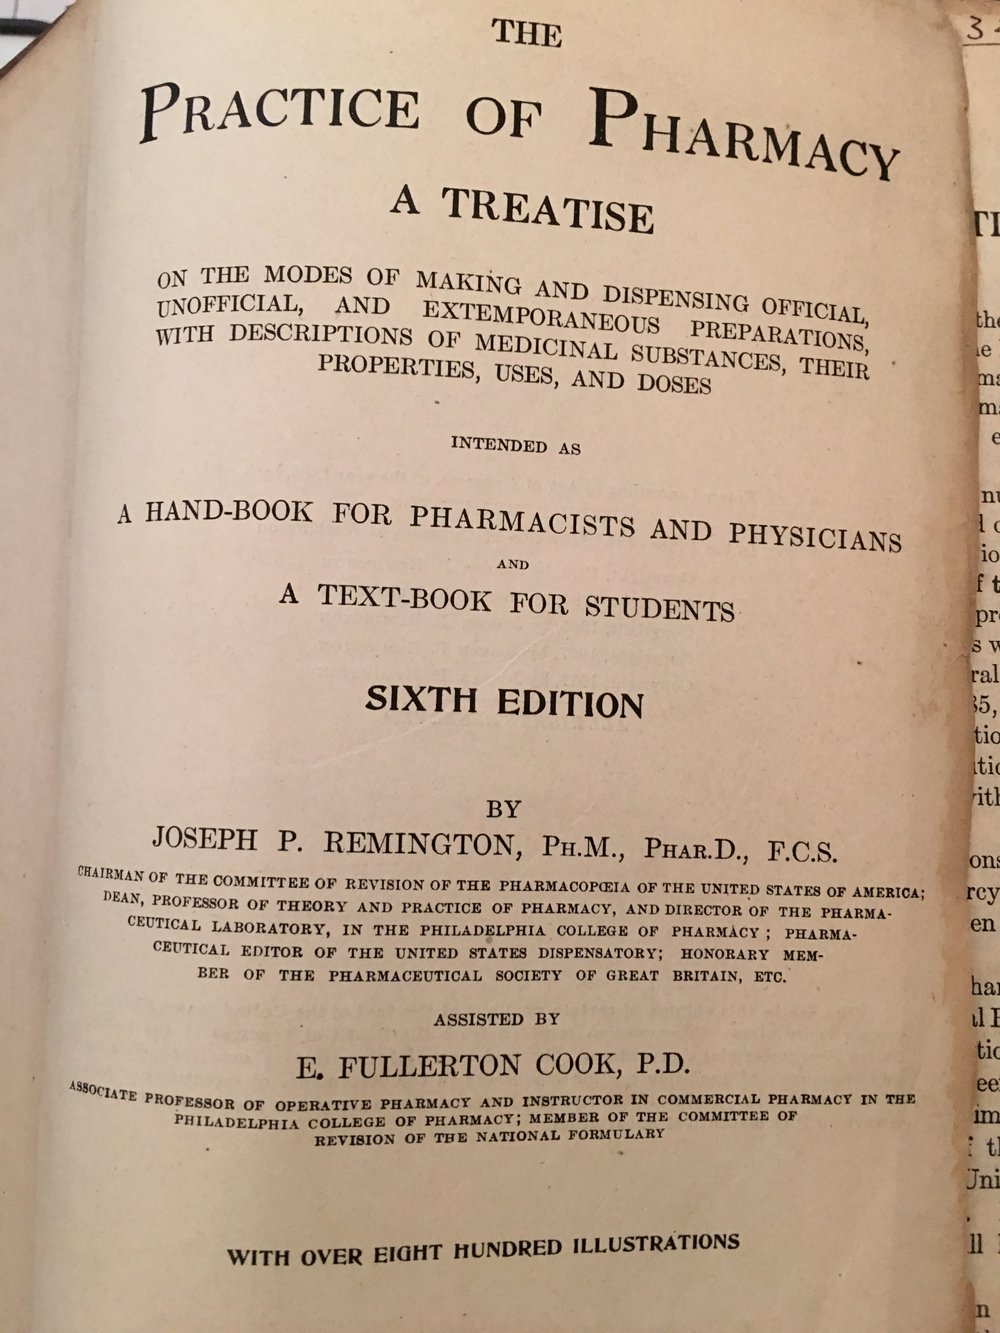 Title Page - Practice of PharmacyA TreatiseOn the modes of making and dispensing official, unofficial, and extemporaneous preparations, with descriptions of medicinal substances, their properties, uses, and dosesIntended AsA hand-book for pharmacists and physiciansandA text-book for studentsSIXTH EDITIONByJoseph P. Remington, Ph.M., Phar.D., F.C.S.Chairman of the committee of revision of the pharmacopoeia of the United States of America; Dean, Professor of Theory and Practice of Pharmacy, And Director of The Pharmaceutical Laboratory, in the Philadeliphia College of Pharmacy; Pharmaceutical Editor of the United States Dispensatory; Honorary Member of the Pharmaceutical Society of Great Britain, Etc.Assisted ByE. Fullerton Cook, P.D.With Over Eigth Hundred Illustrations